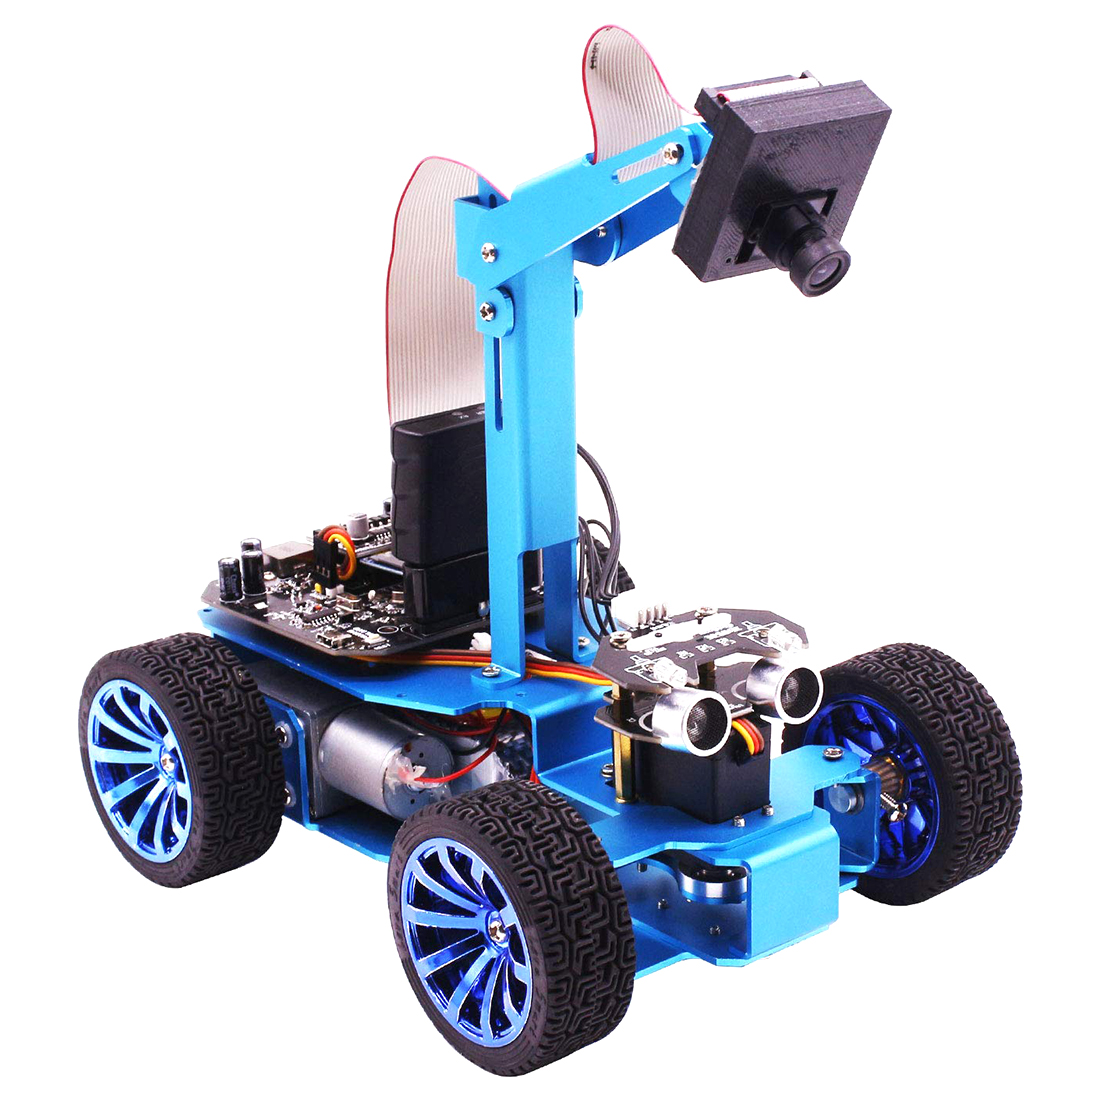 UTOYSLAND STM32 Visual Robot OV7670 Camera Tracking OLED Screen Independent Steering Robotics High-Power Motor Programmable Toy